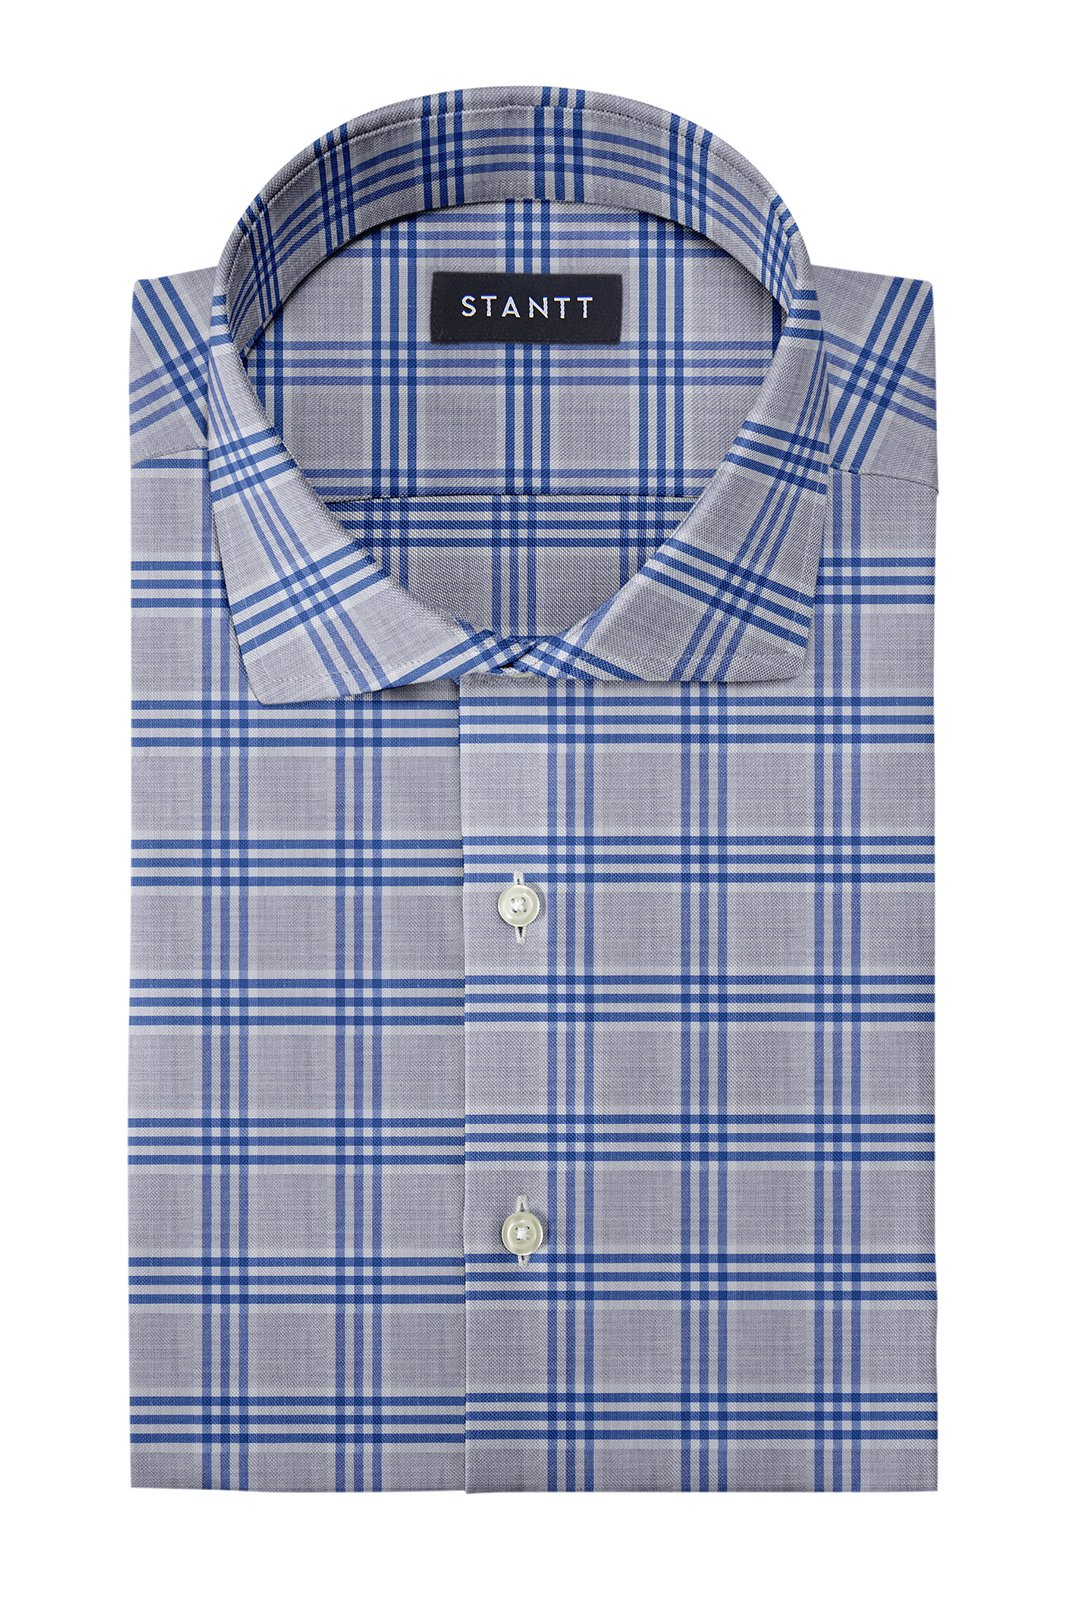 Melange Grey and Blue Box Check: Cutaway Collar, French Cuff